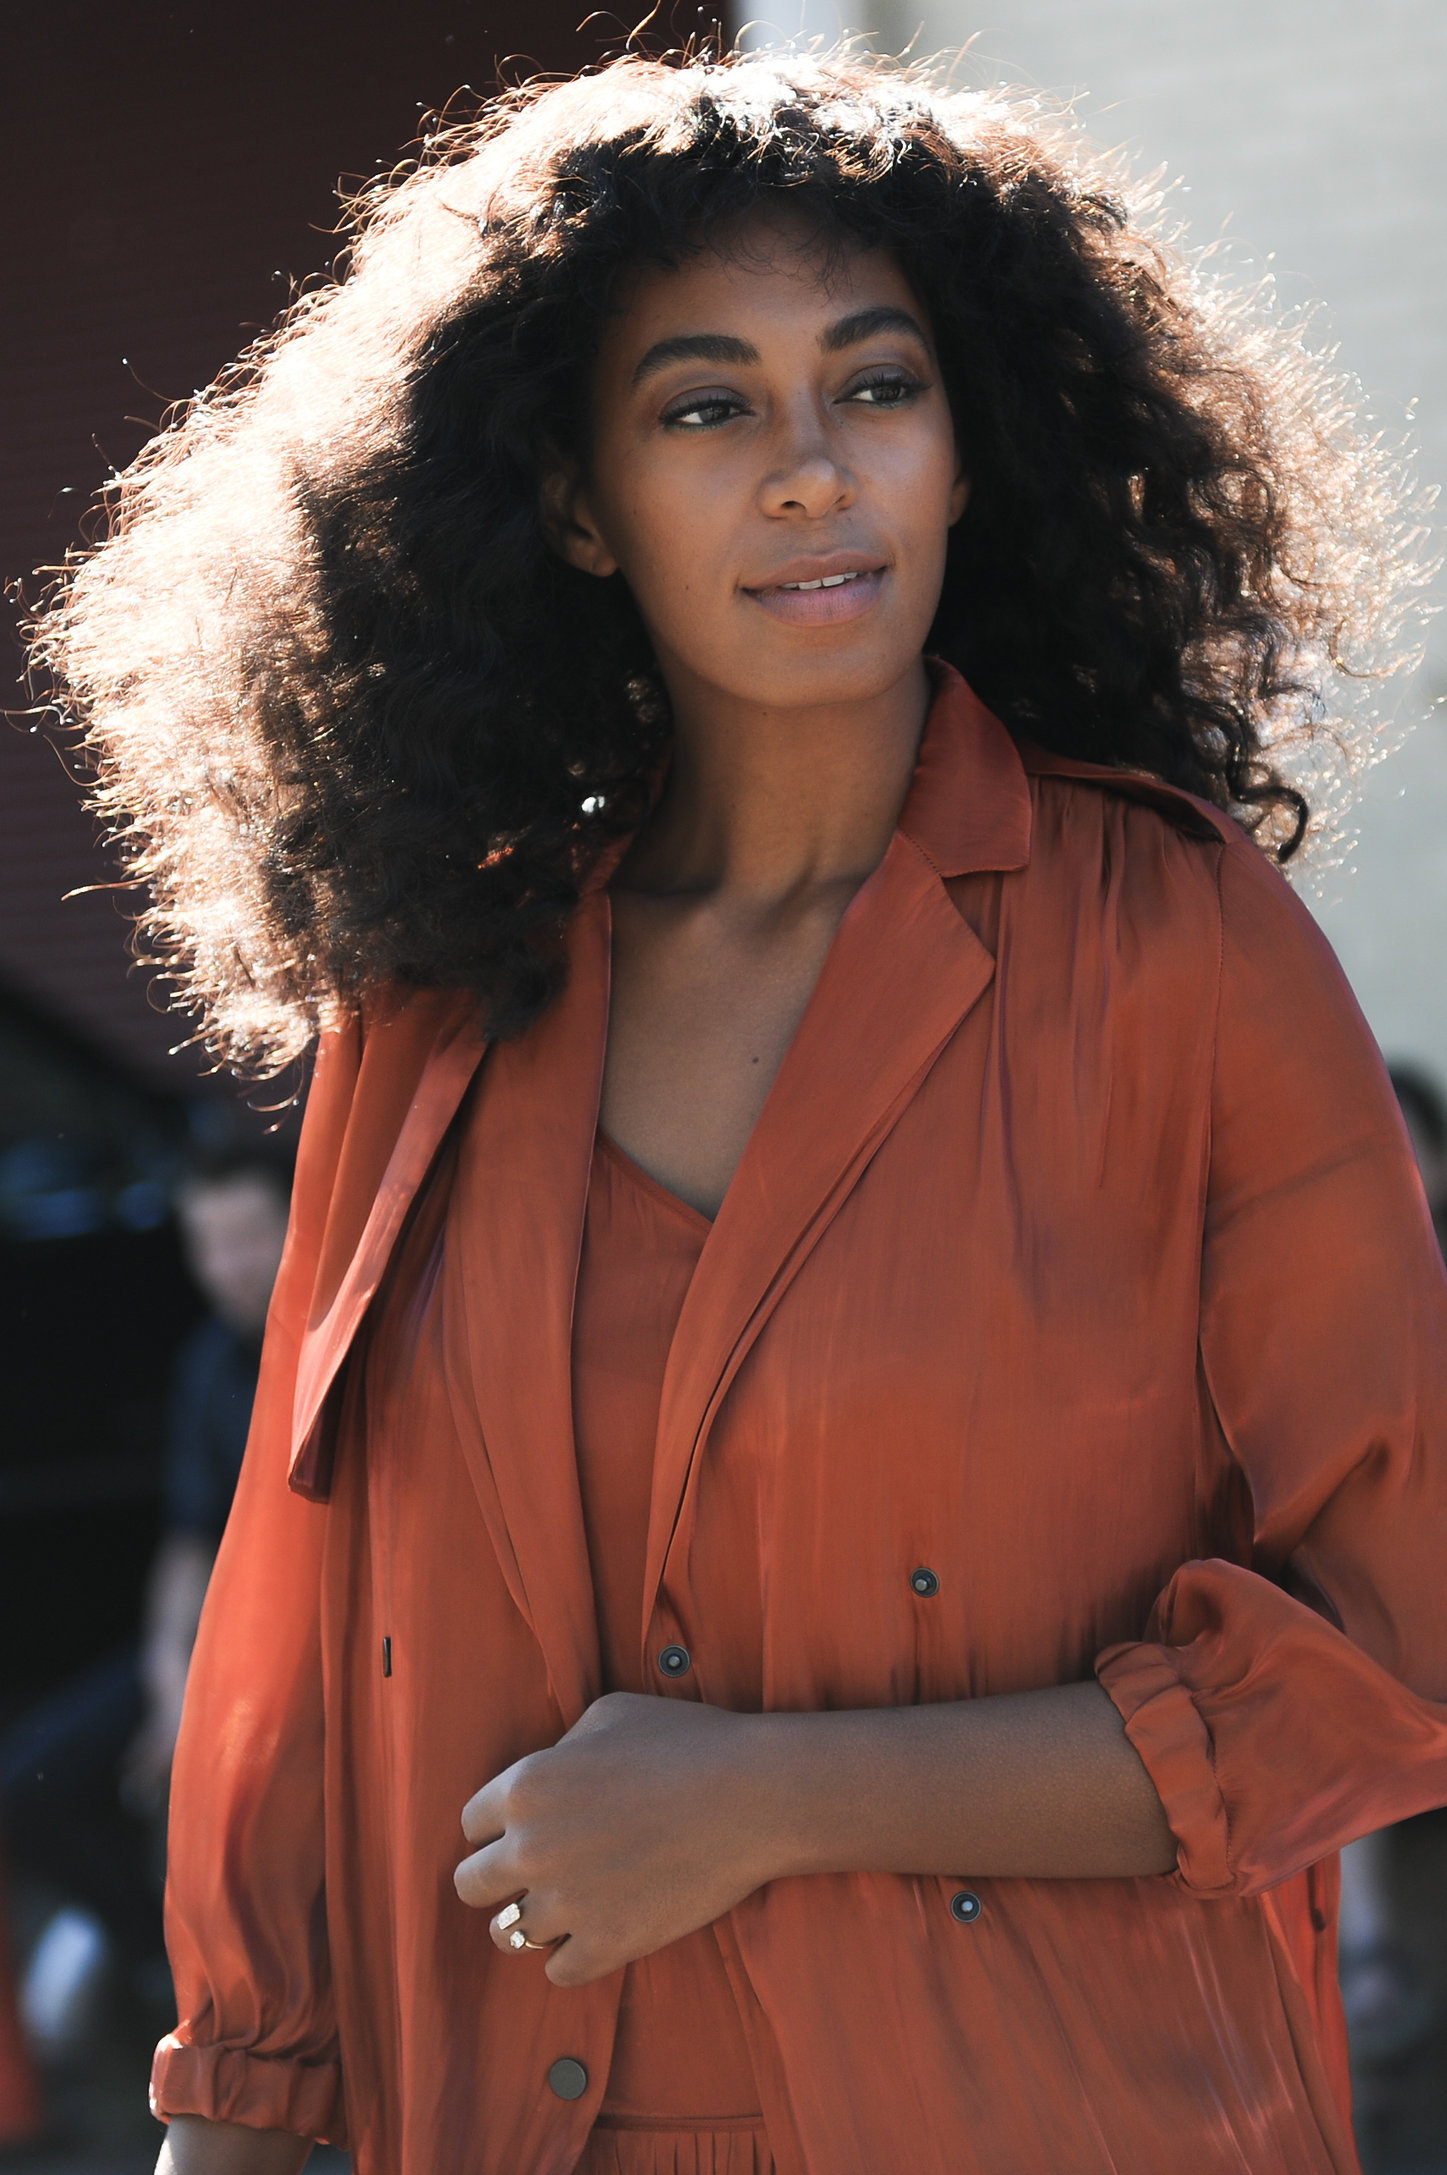 george-elder-photography-street-style-solange-knowles.jpg